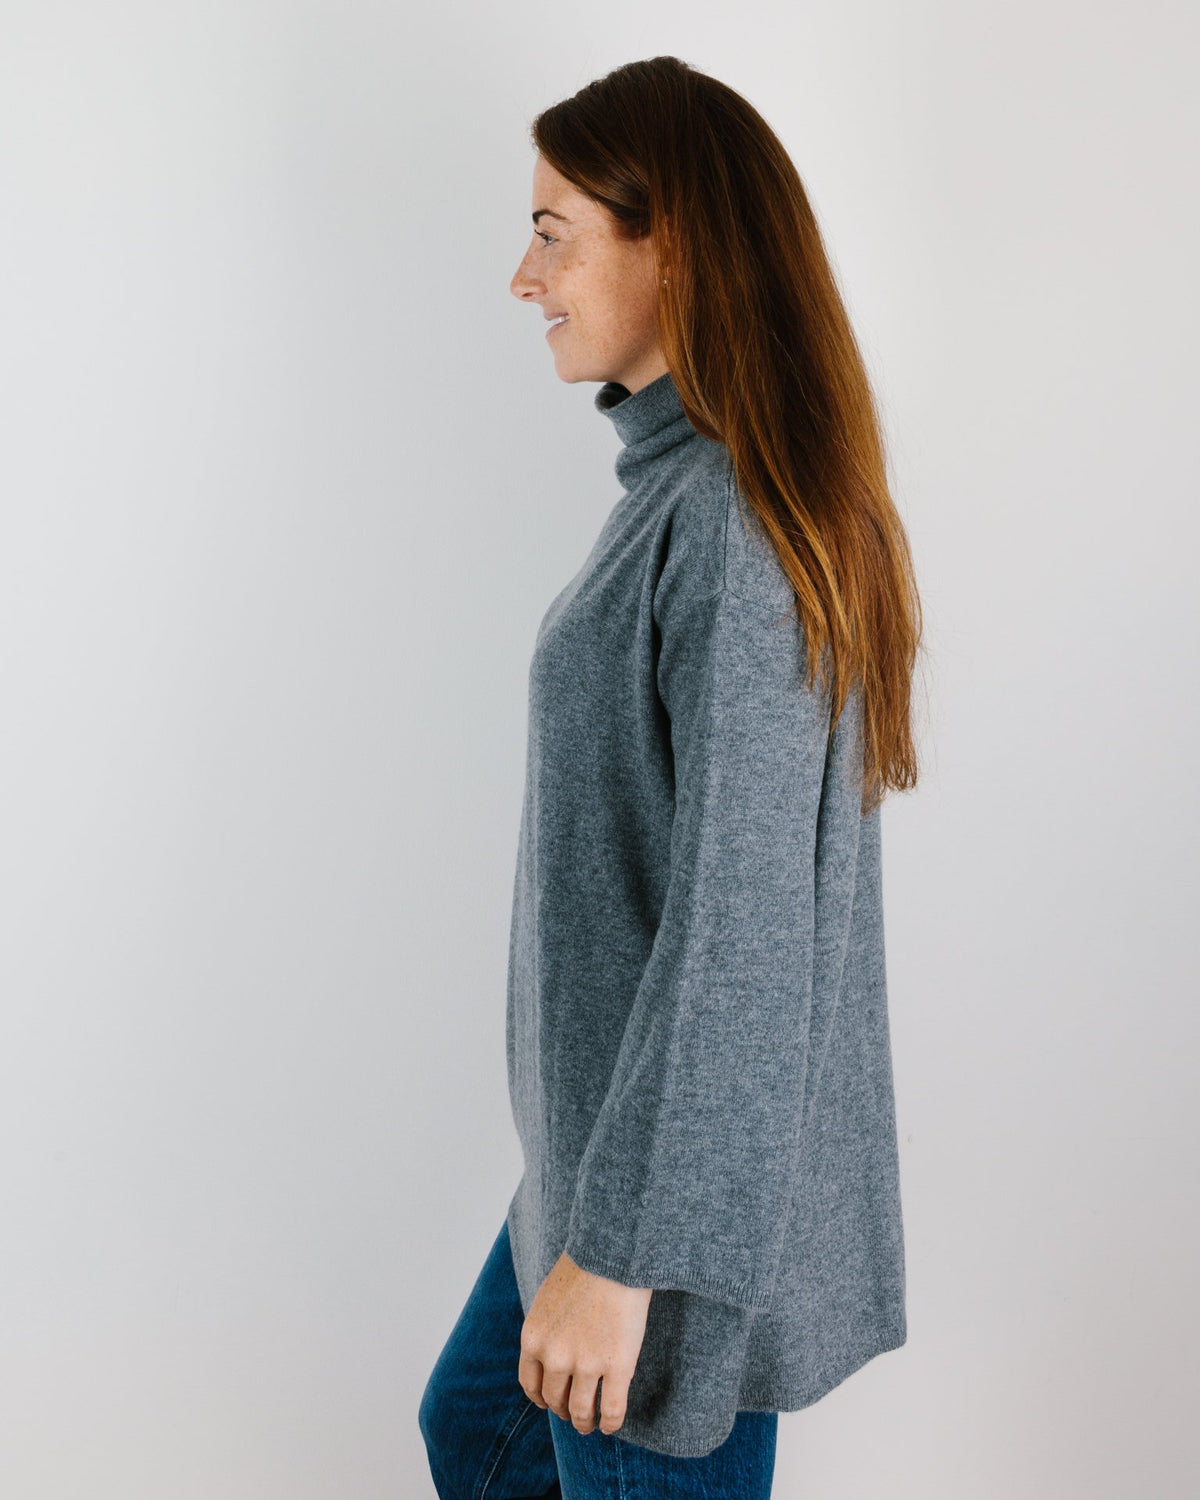 Demylee Clothing Anders Flowy Turtleneck in Med Heather Grey